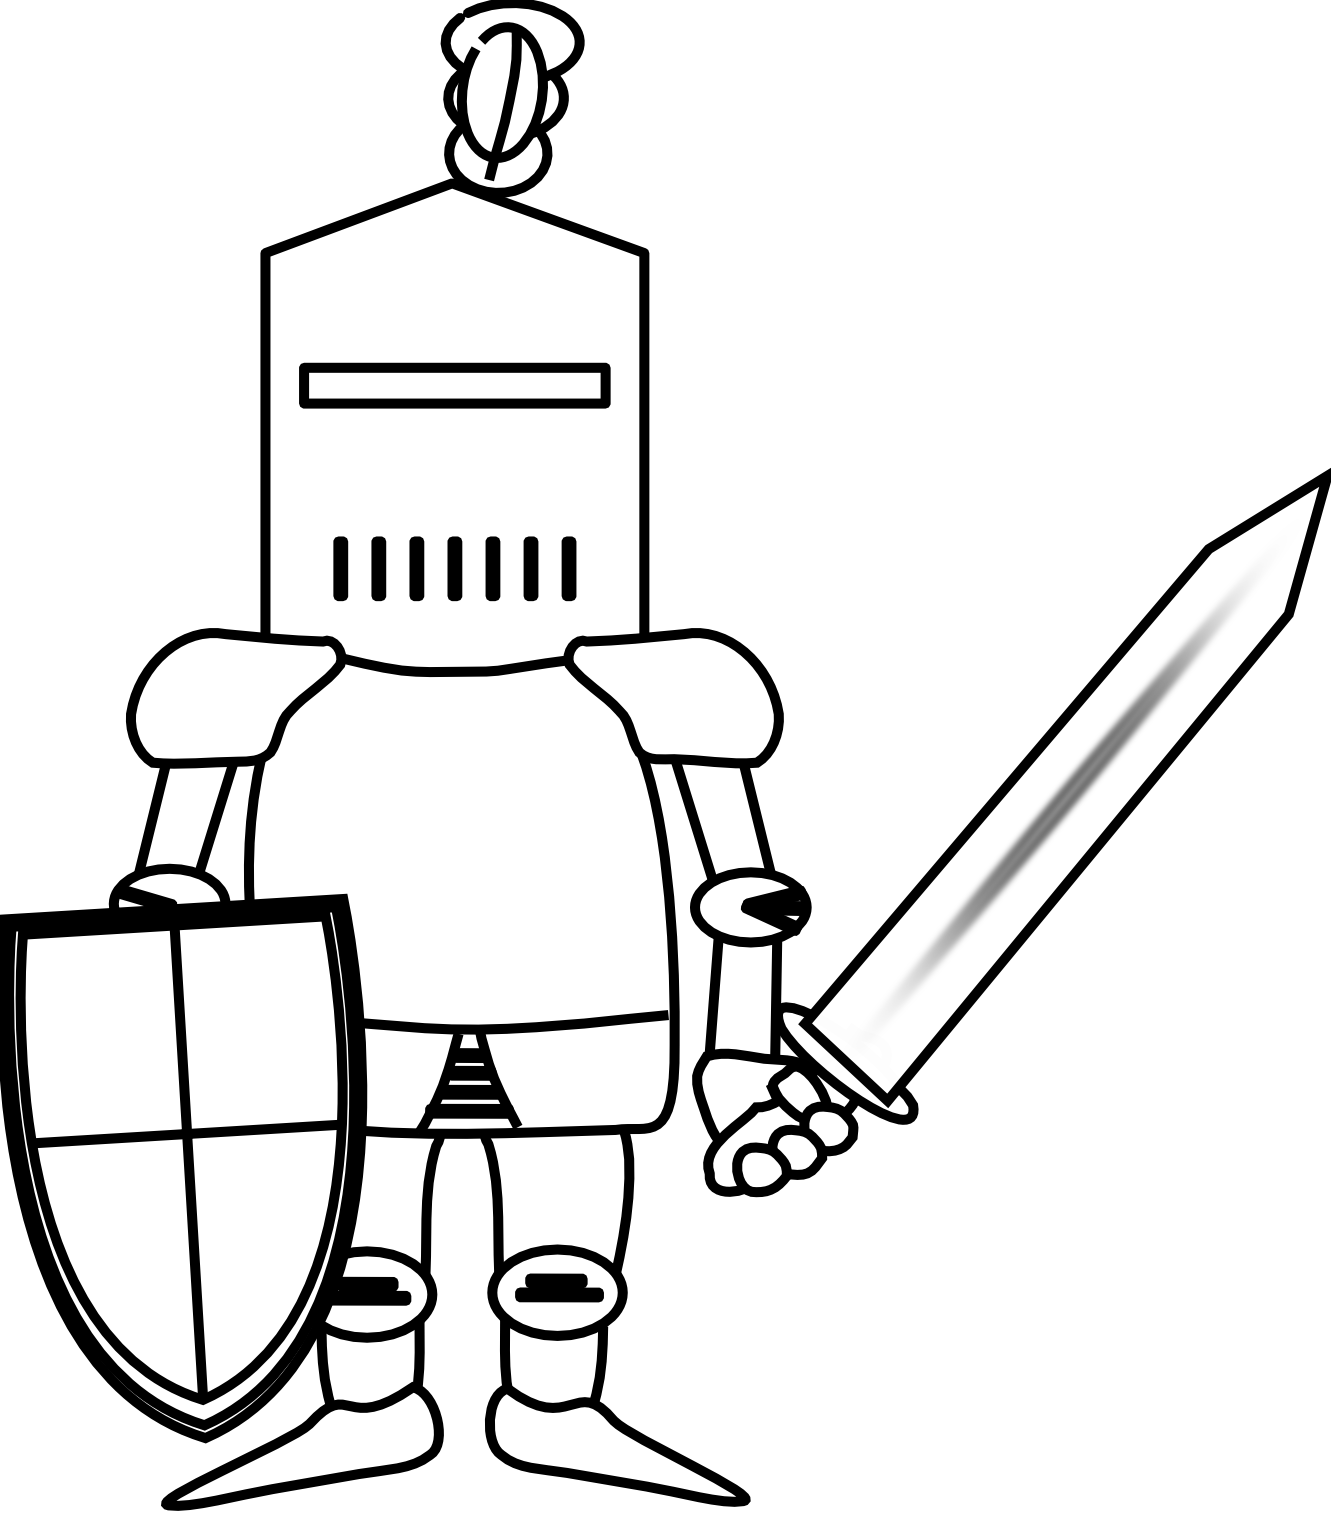 Peasant clipart black and white vector transparent download Free Knight Clipart, Download Free Clip Art, Free Clip Art on ... vector transparent download